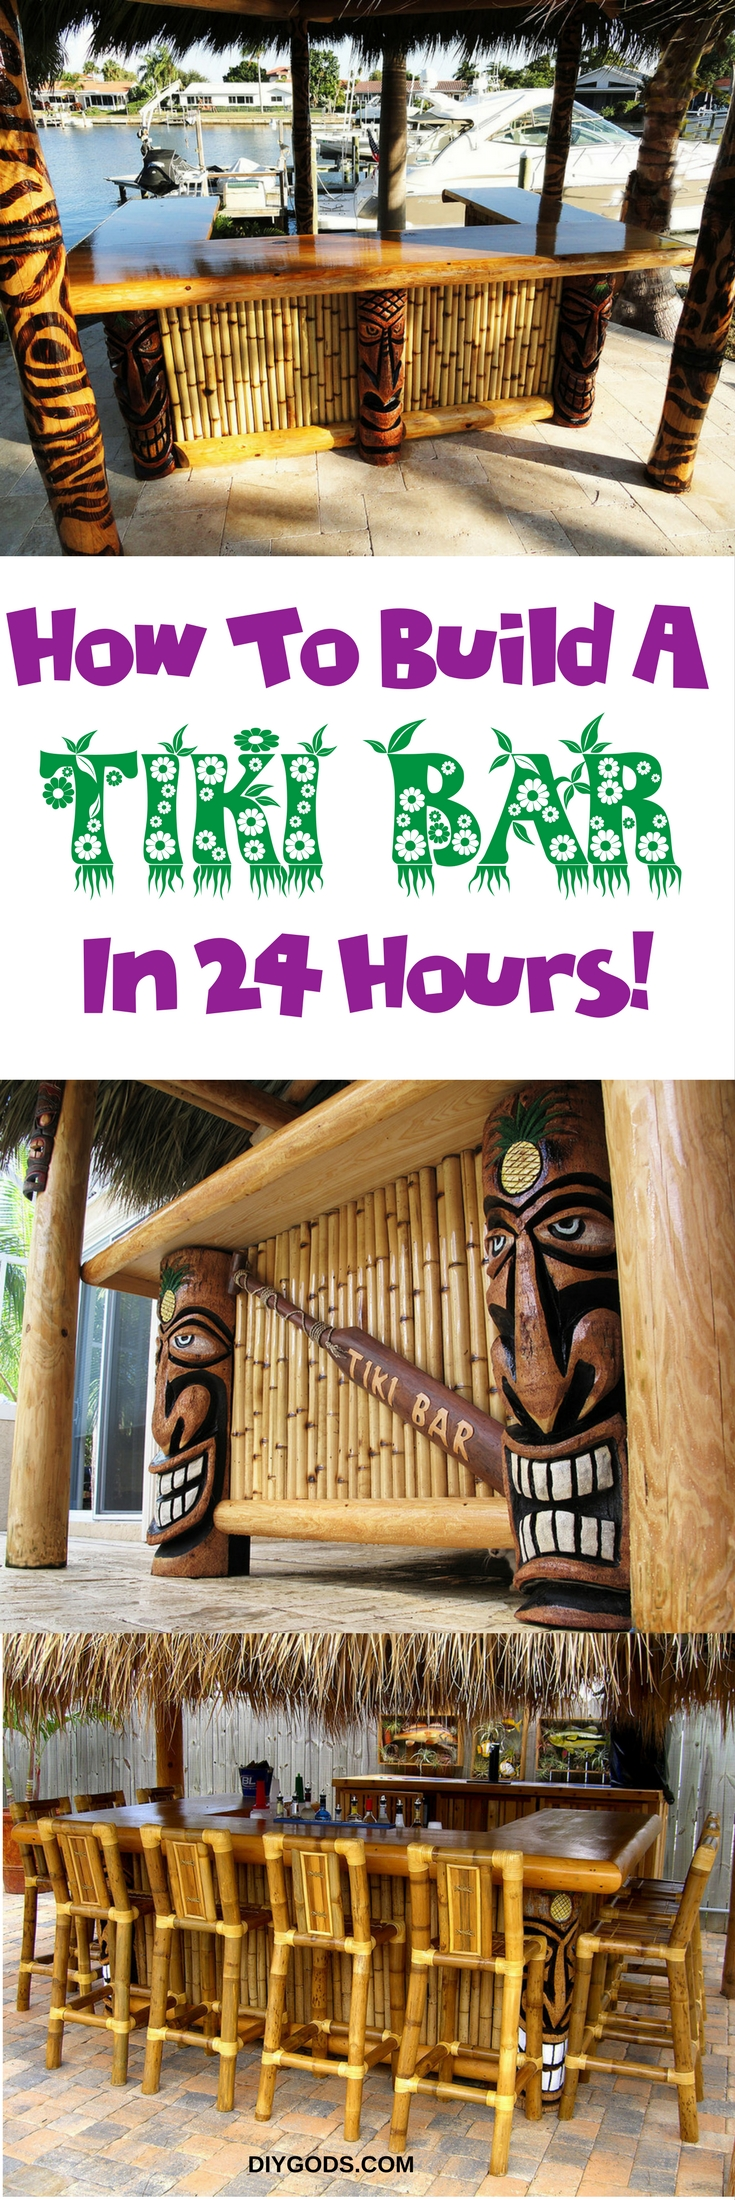 How To Build A Tiki Bar In 24 Hours